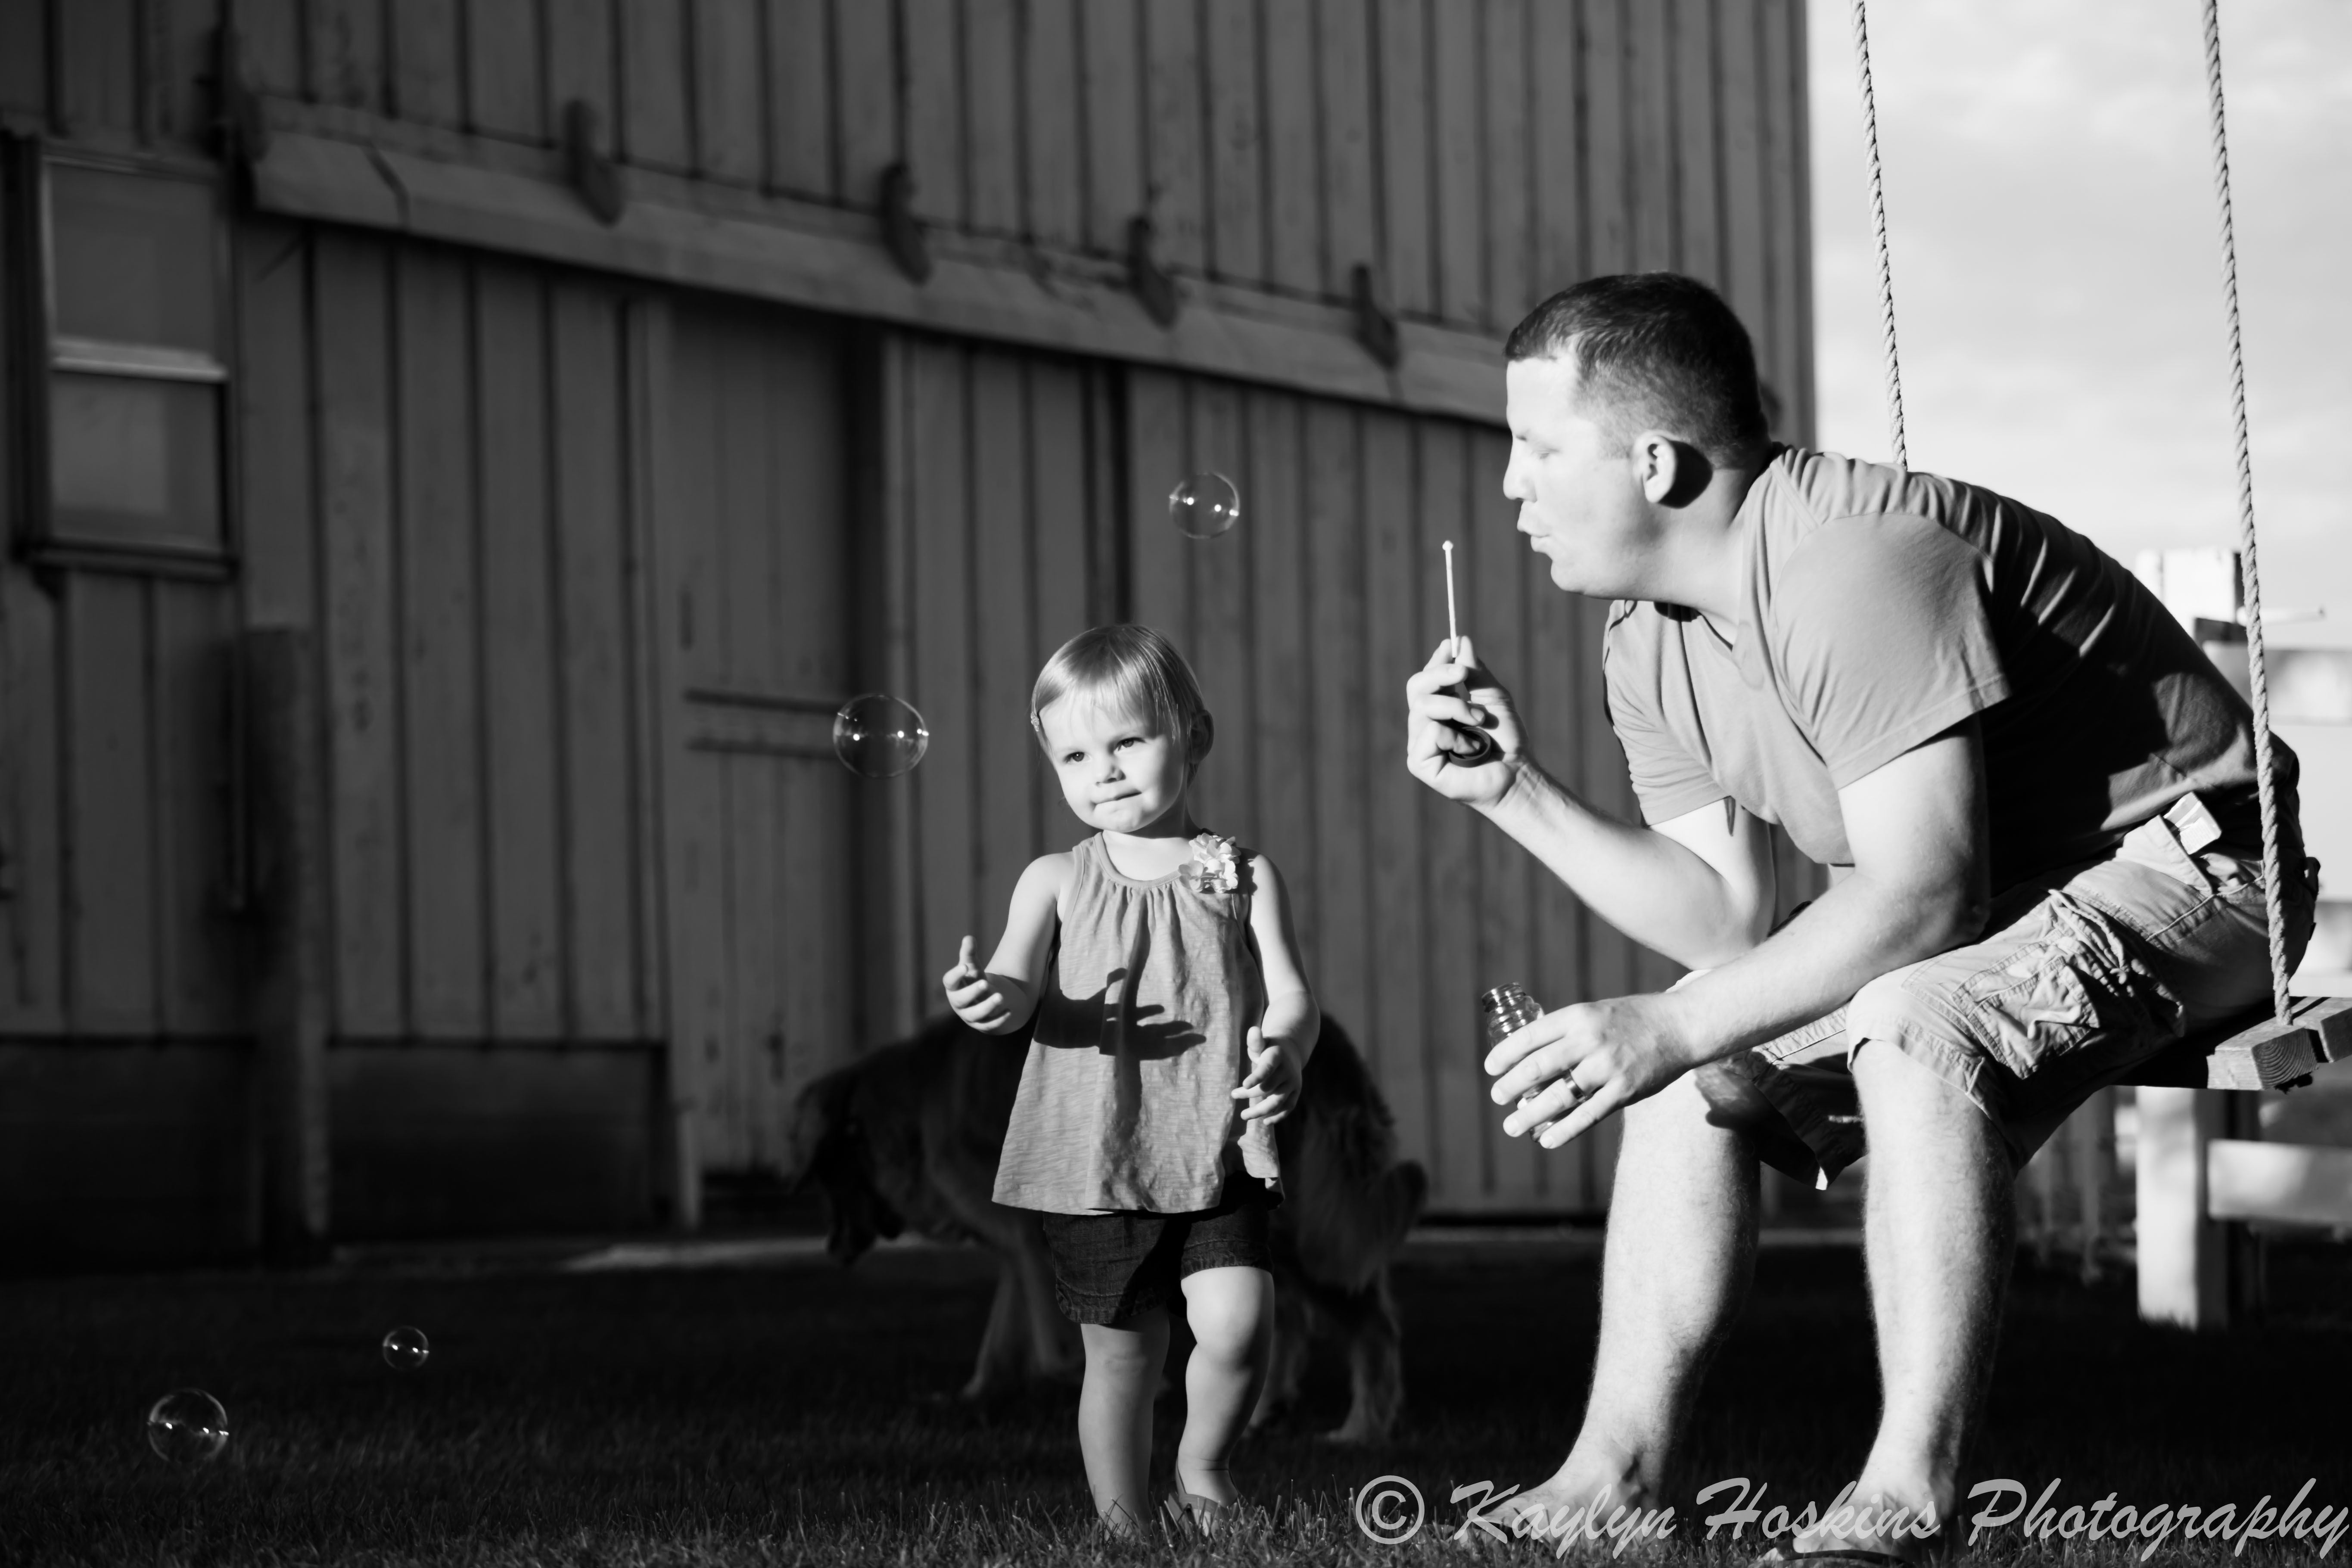 Dad blows bubbles for daughter to catch during family photos